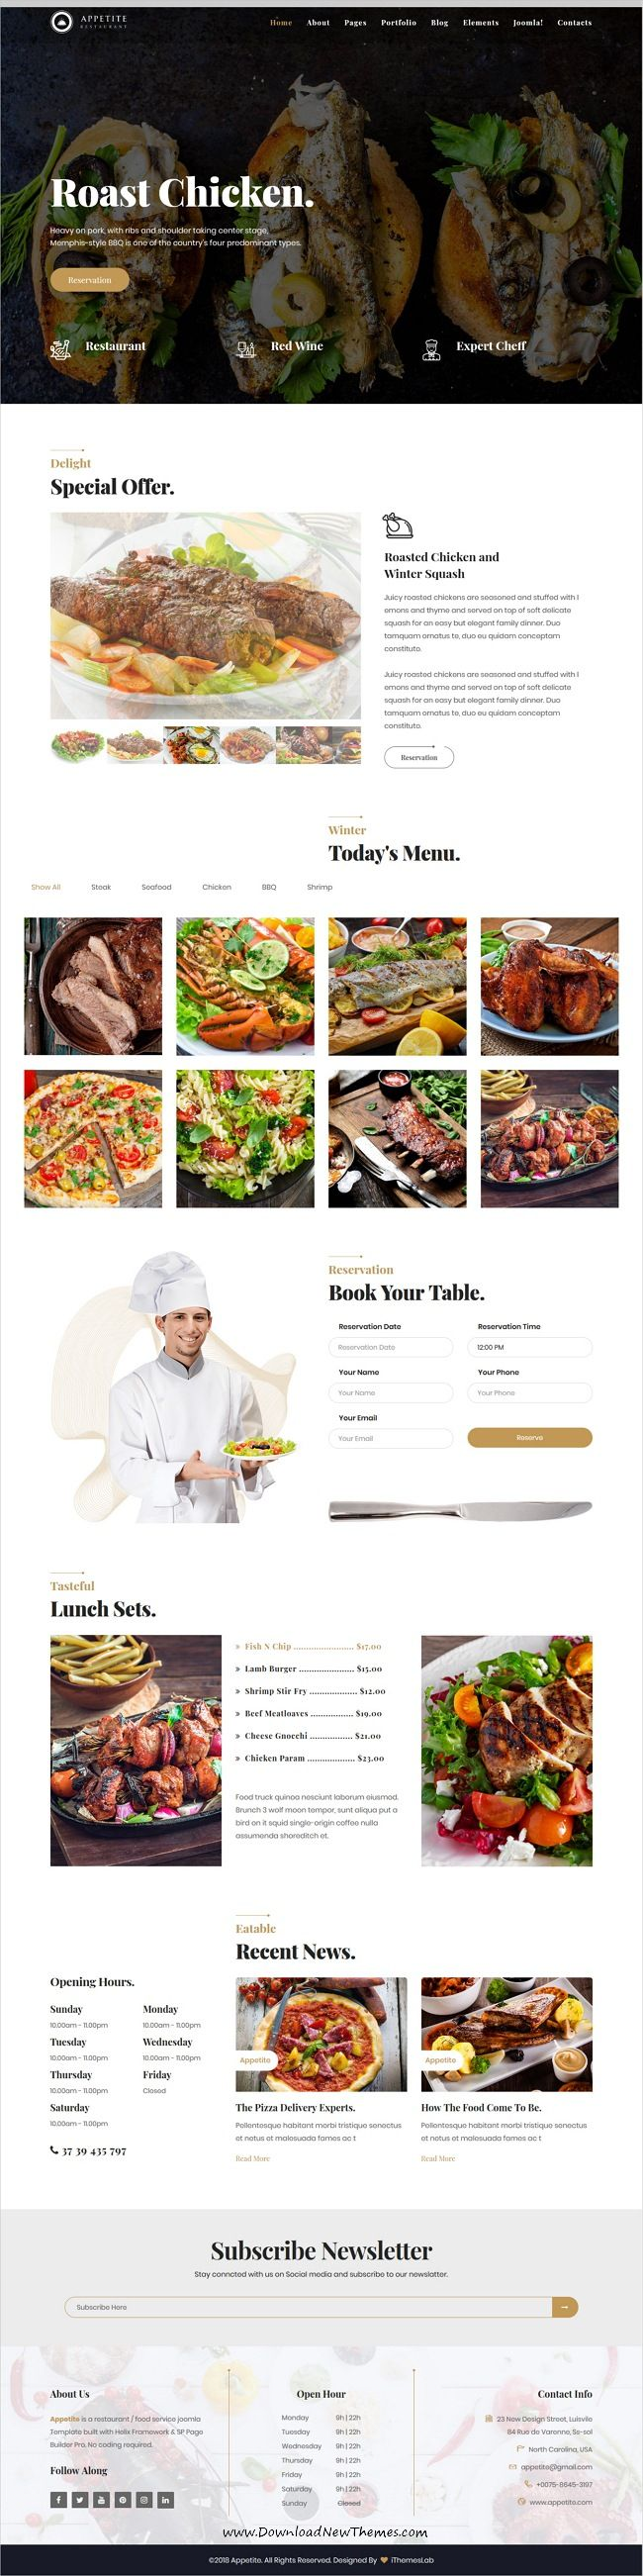 Appetite is clean and modern design 5in1 responsive Joomla #theme for #restaurants, cafe and #food service website to live preview & download click on Visit 👆